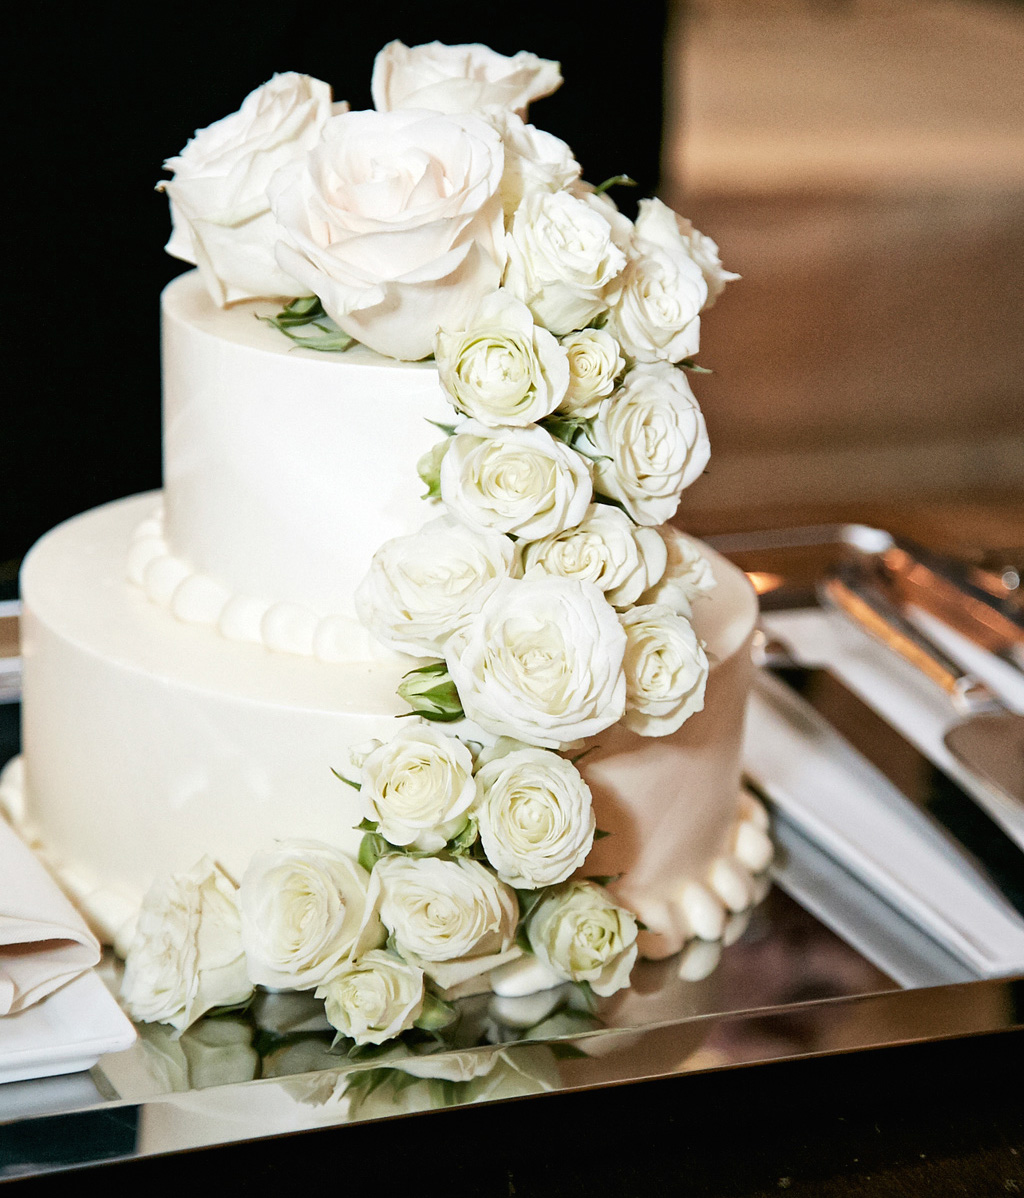 Small white wedding cake with fresh white rose flowers